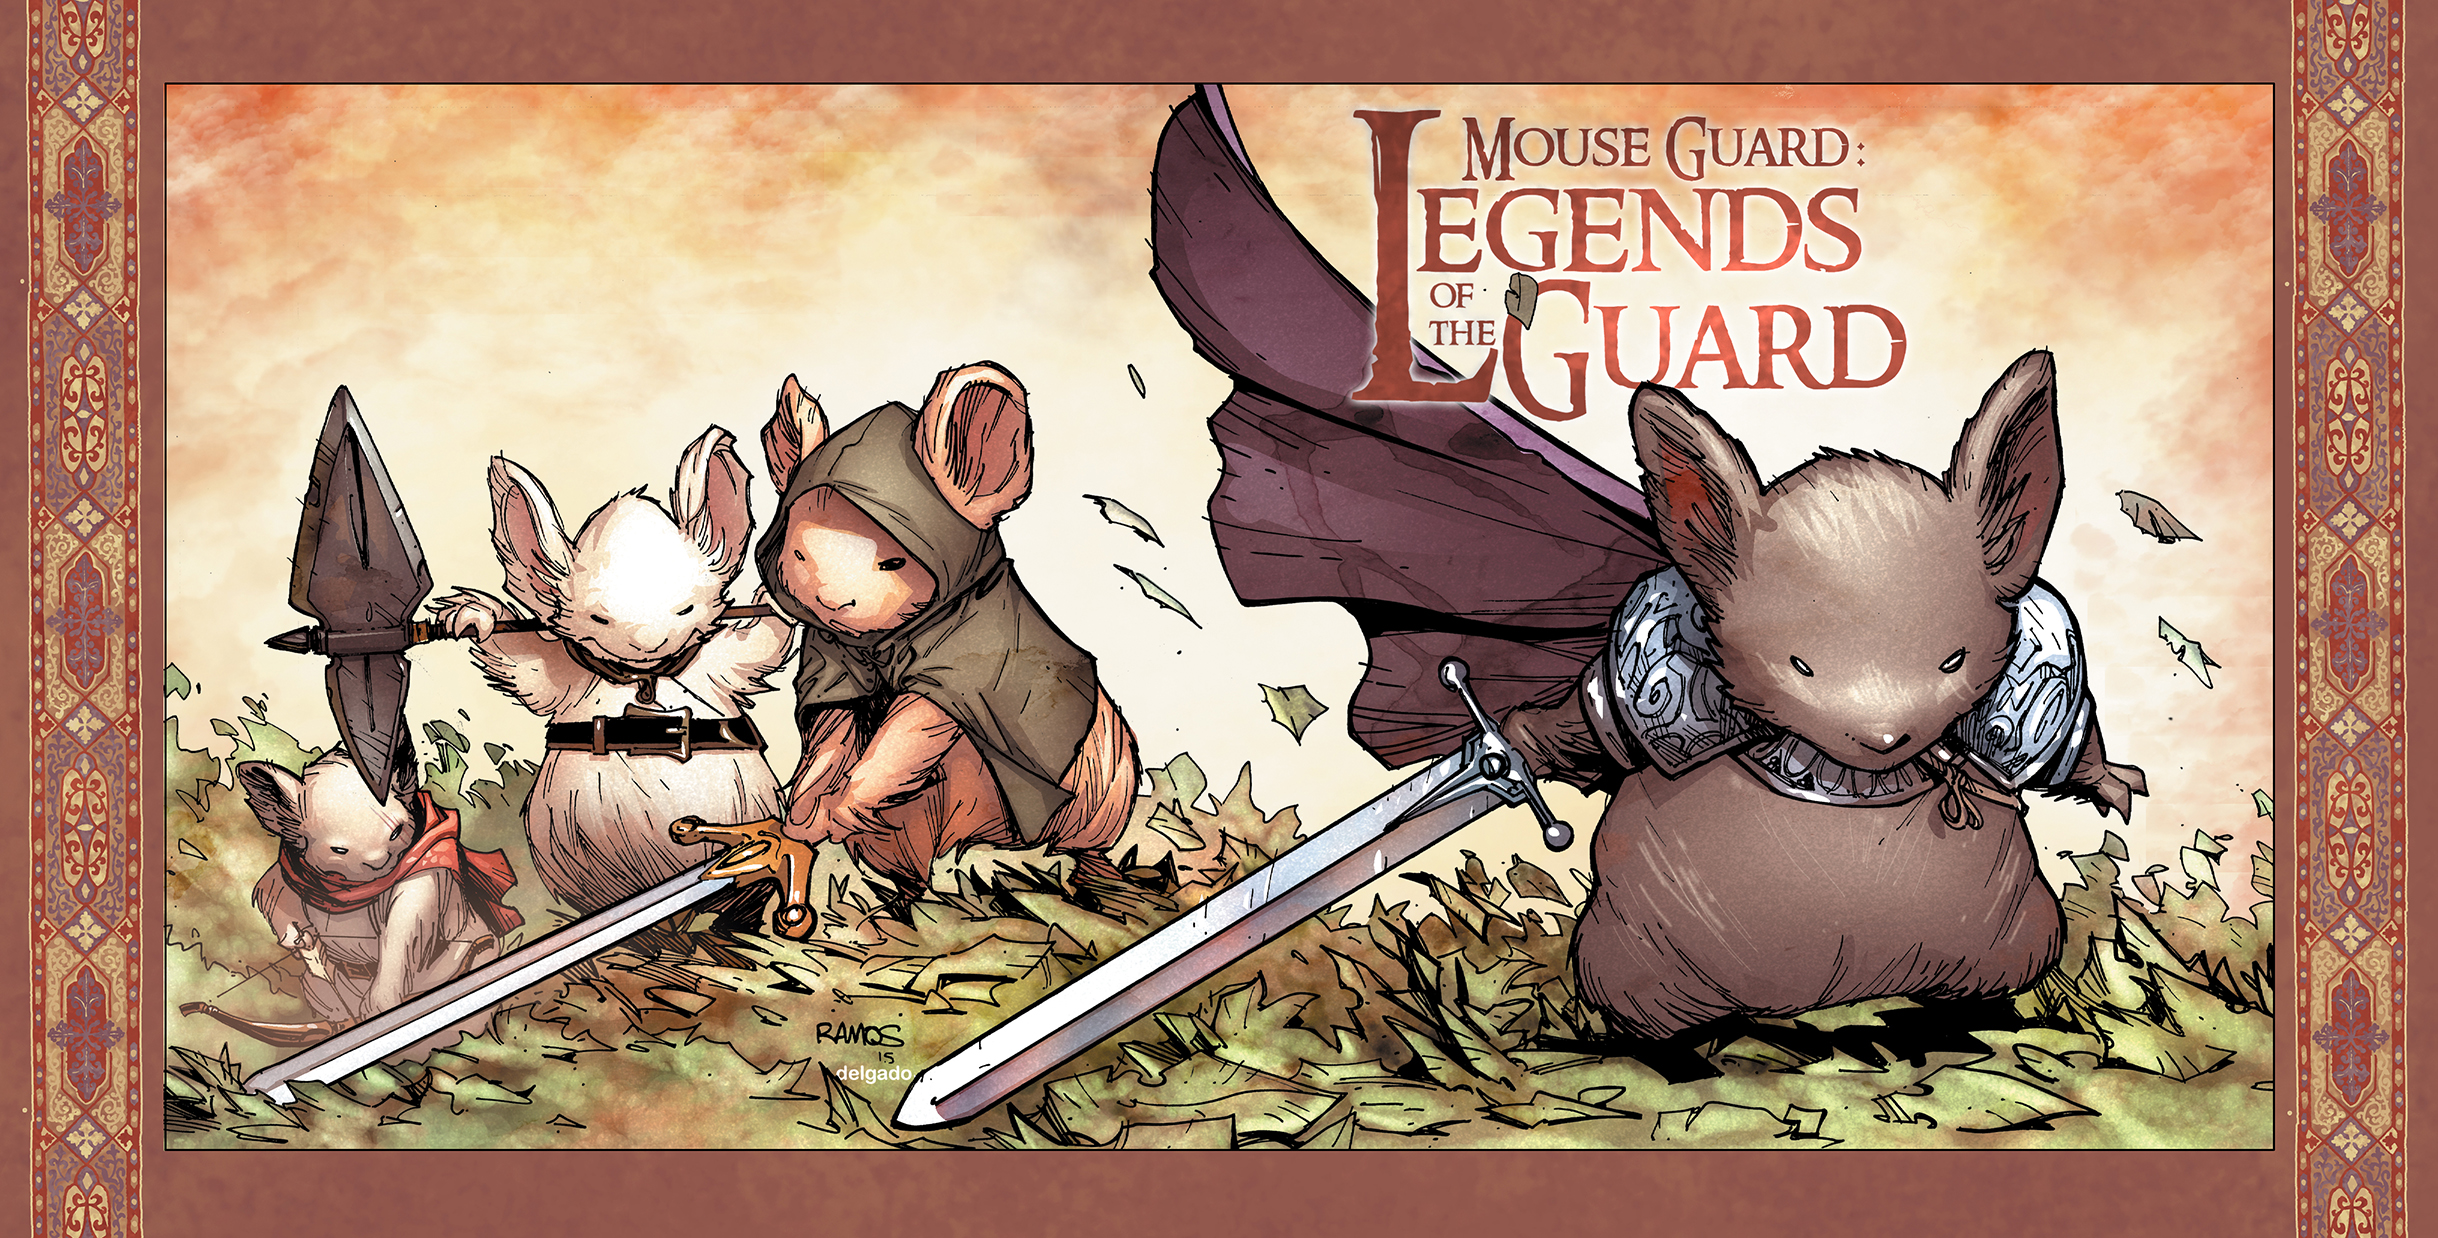 MG: Legends of the Guard Vol. 3 #1 Incentive Cover